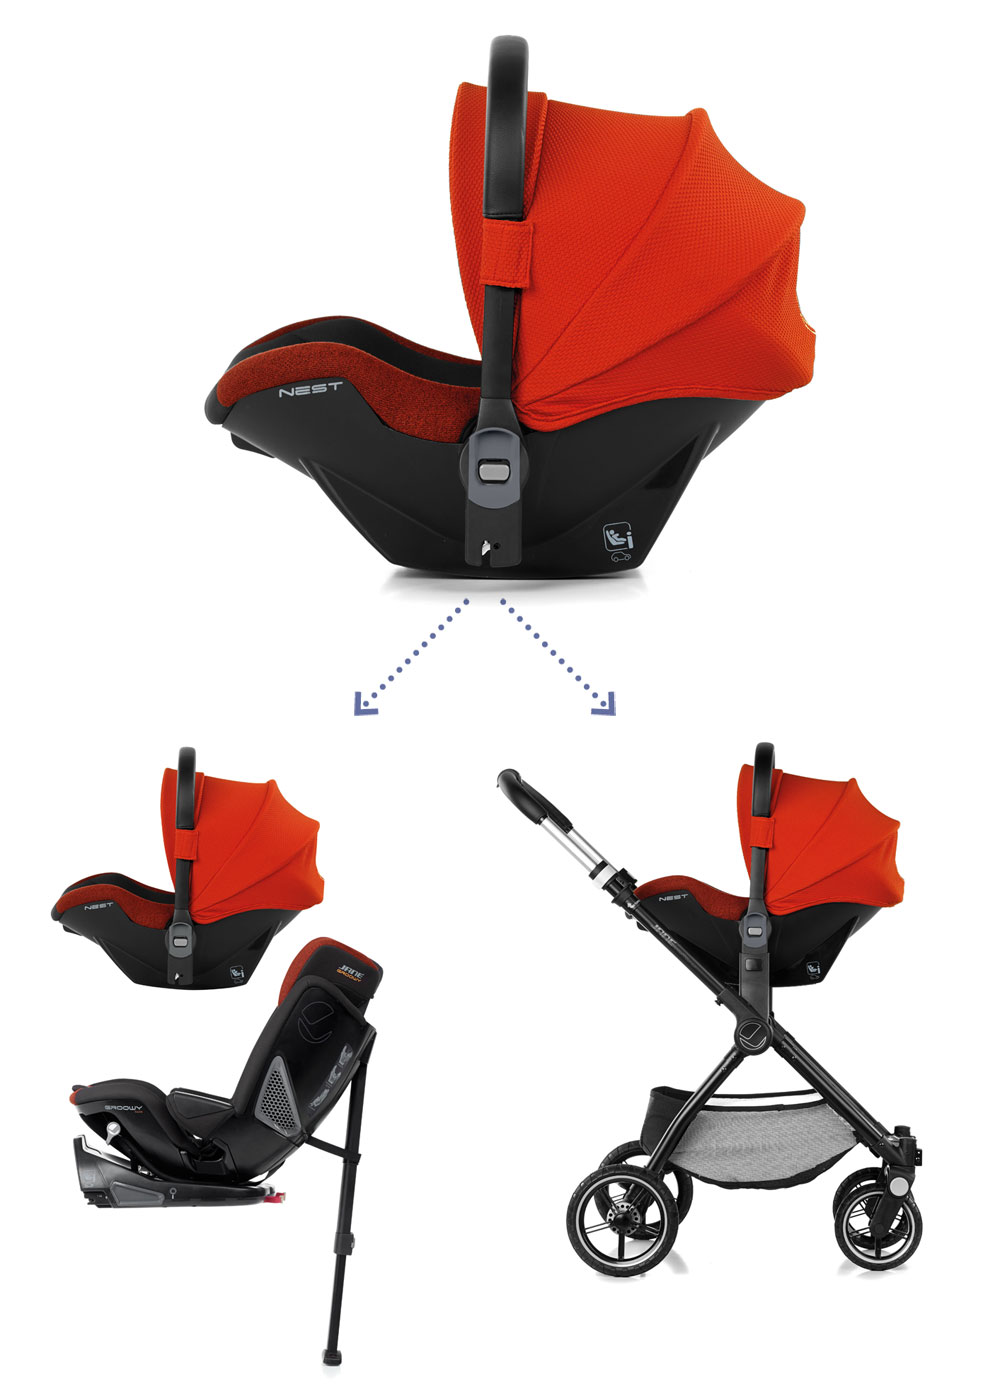 compatible with all Jané pushchairs